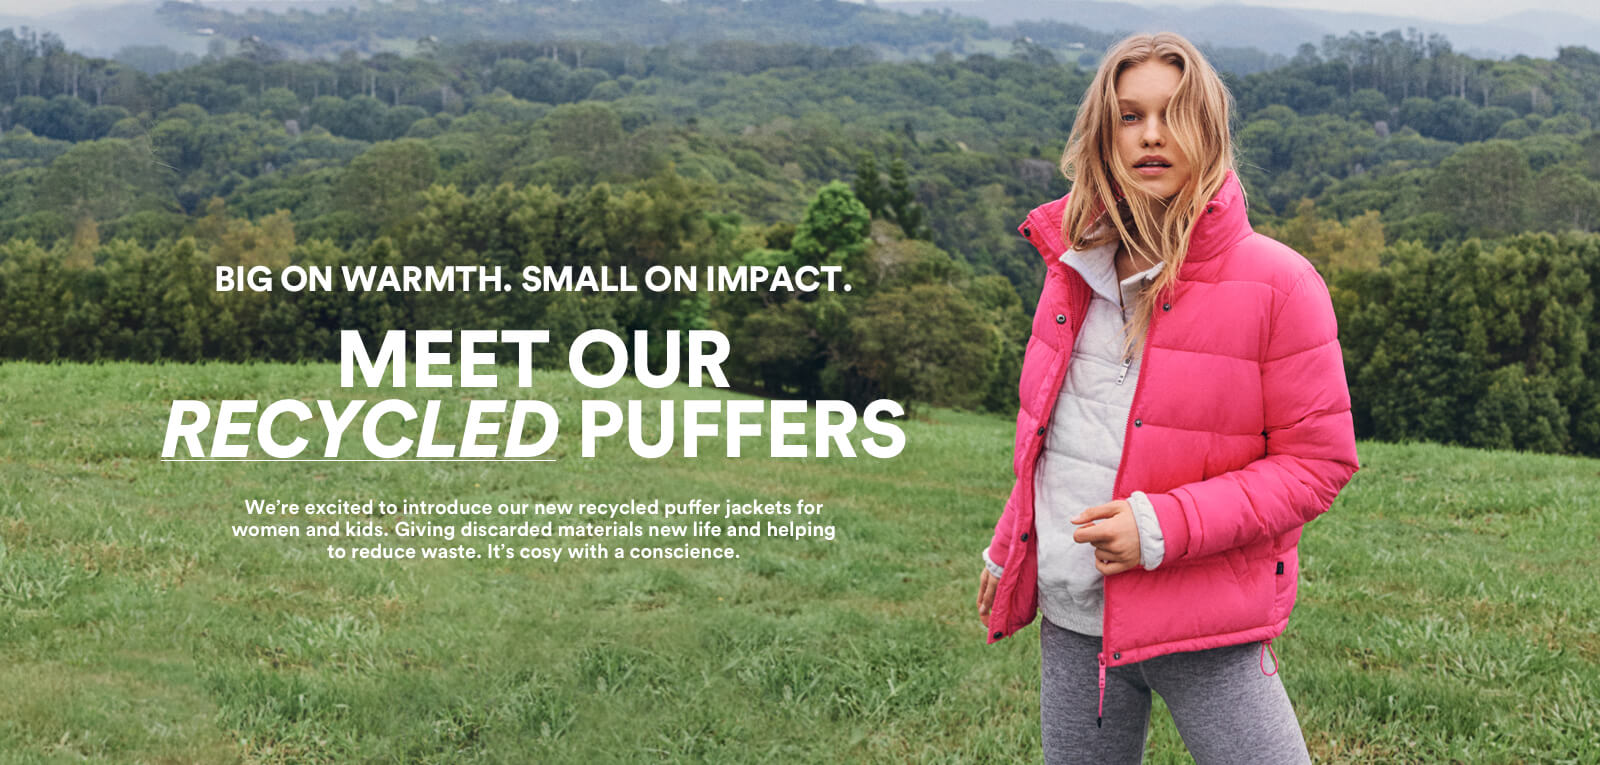 Meet our Recycled Puffers.